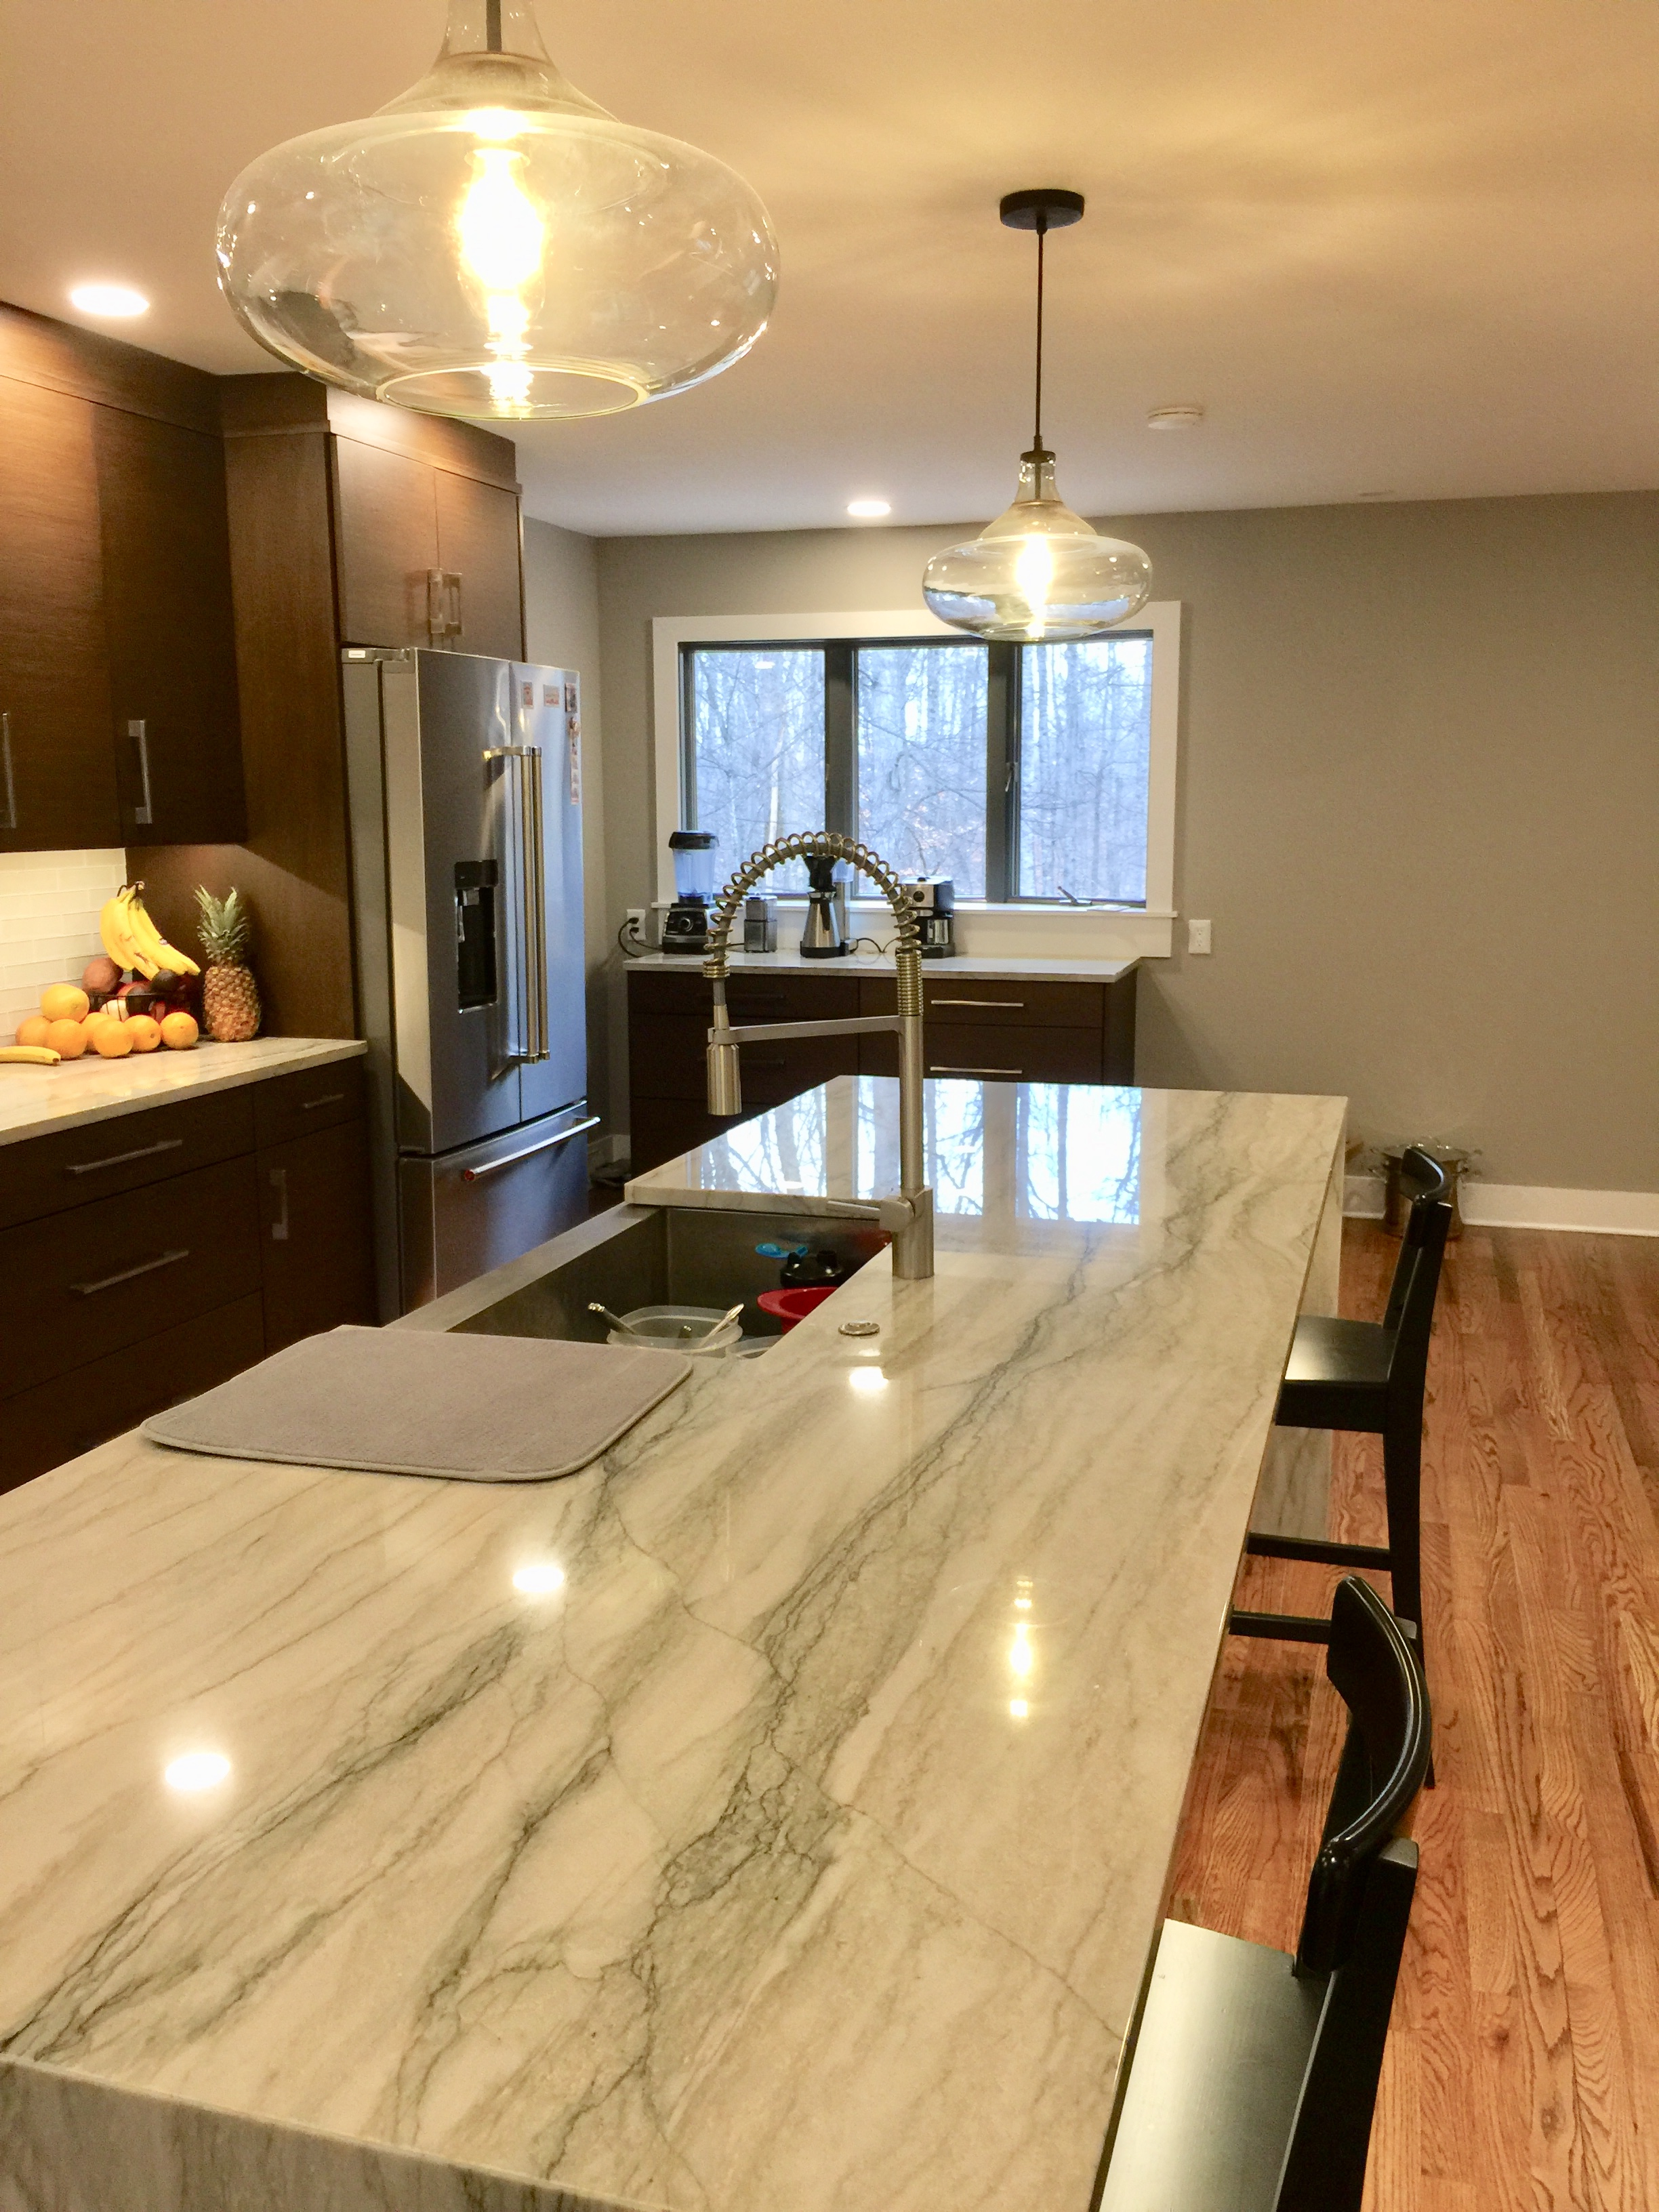 The Sea Pearl Quartzite they chose is outstanding. Note the coffee bar in the back.